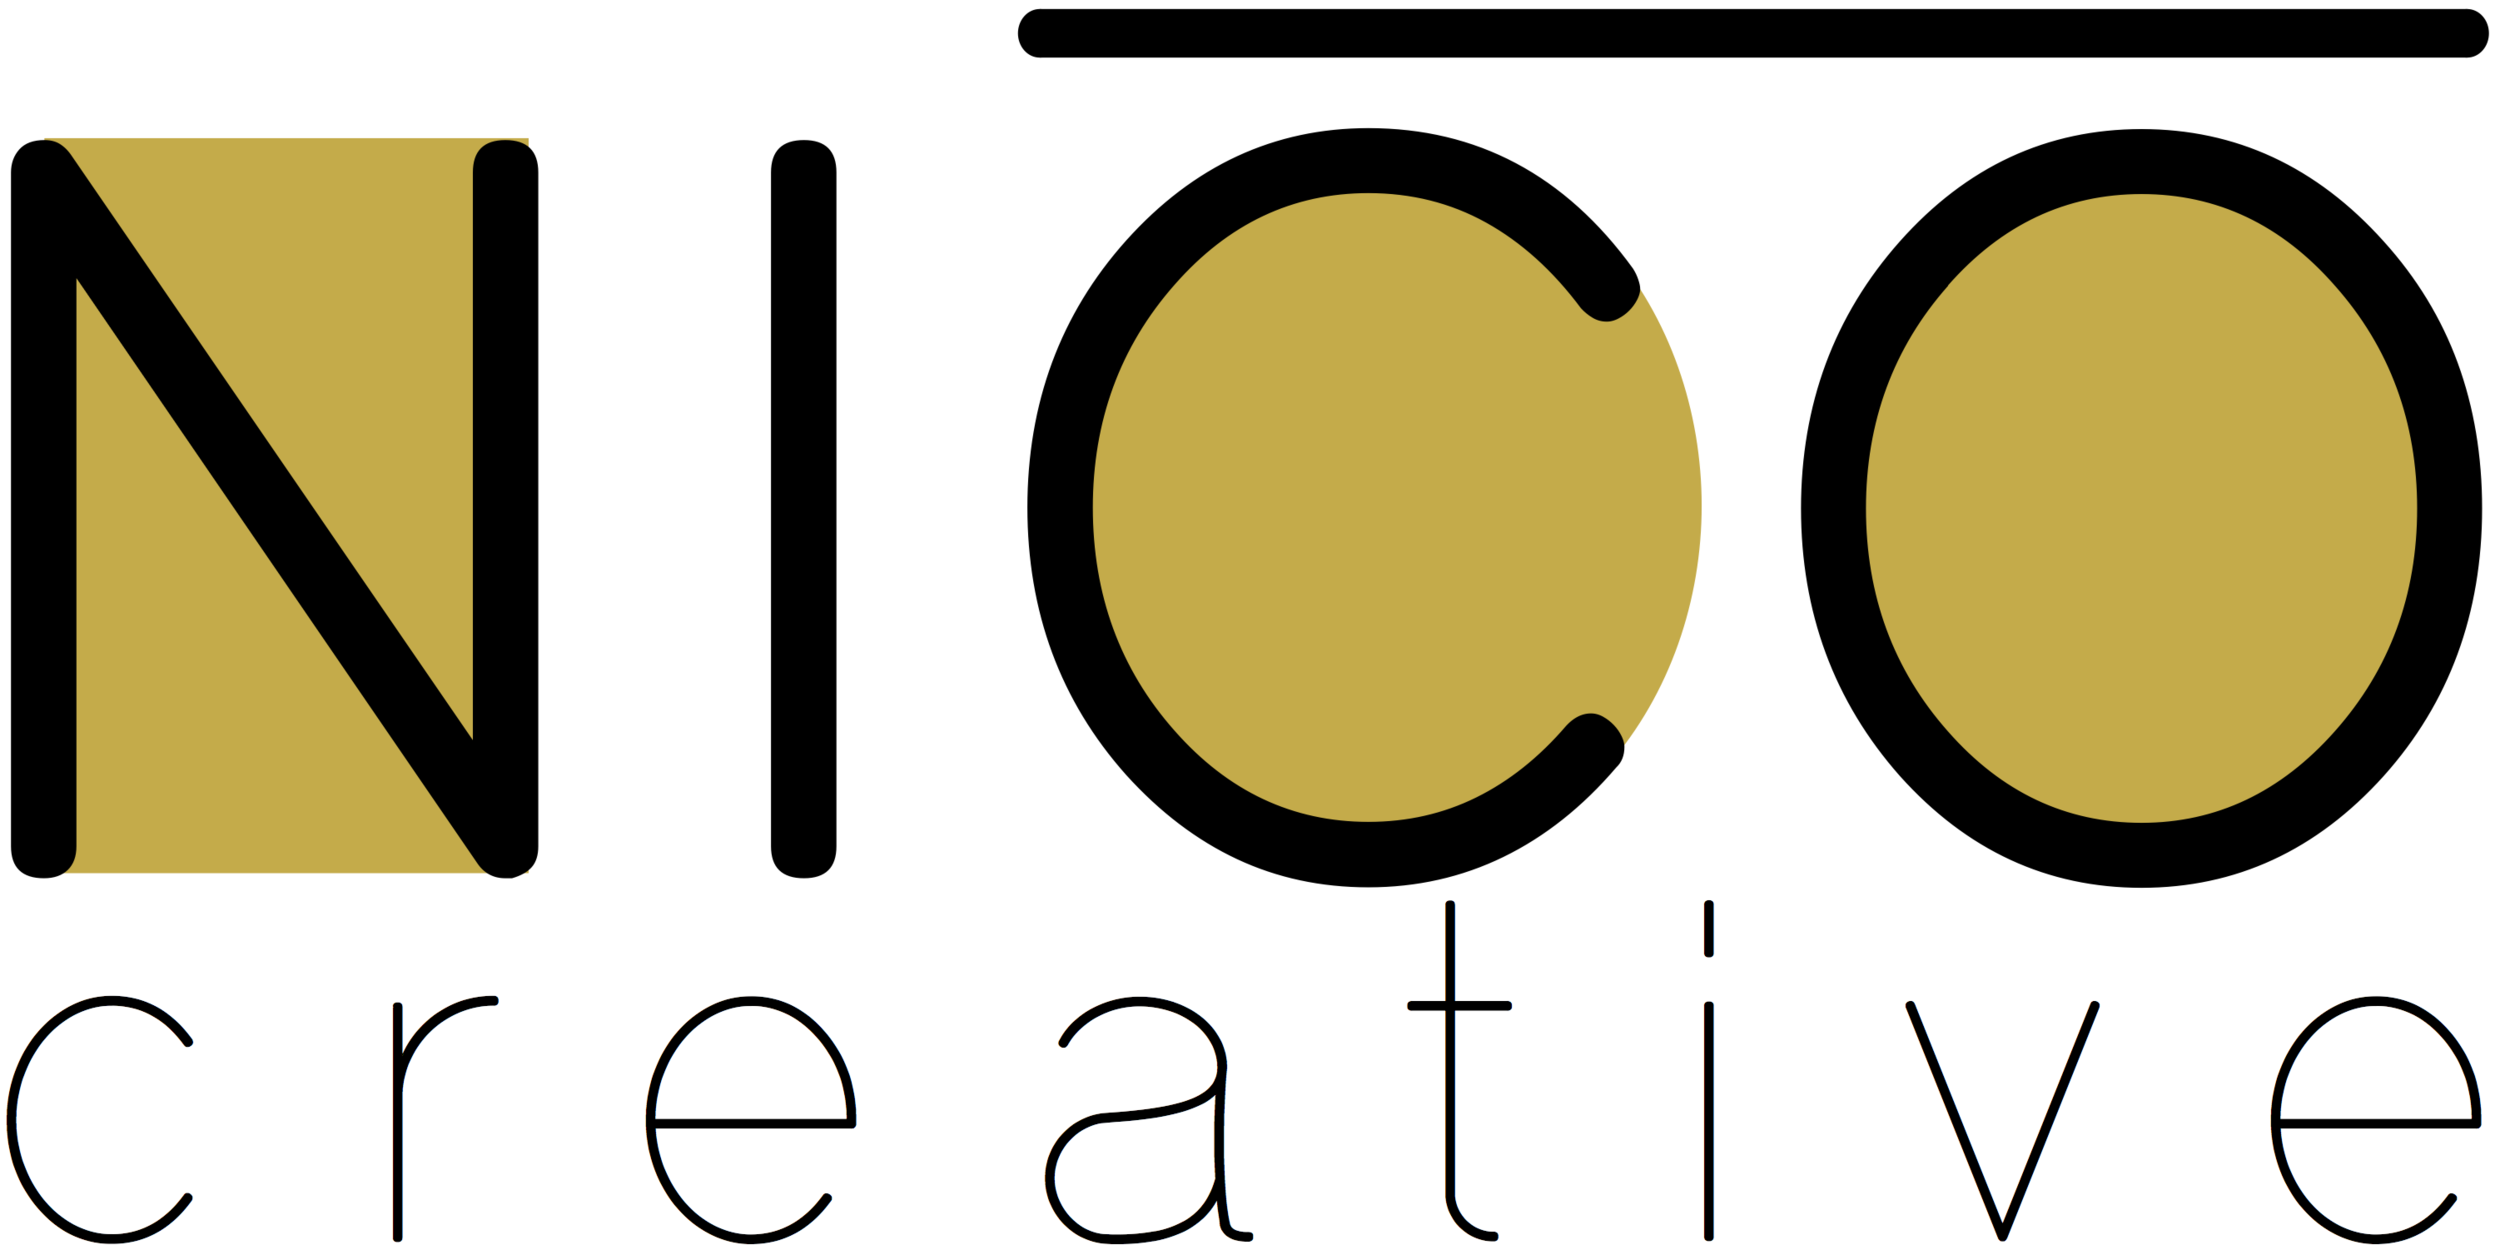 NICO creative CO logo without tagline.png